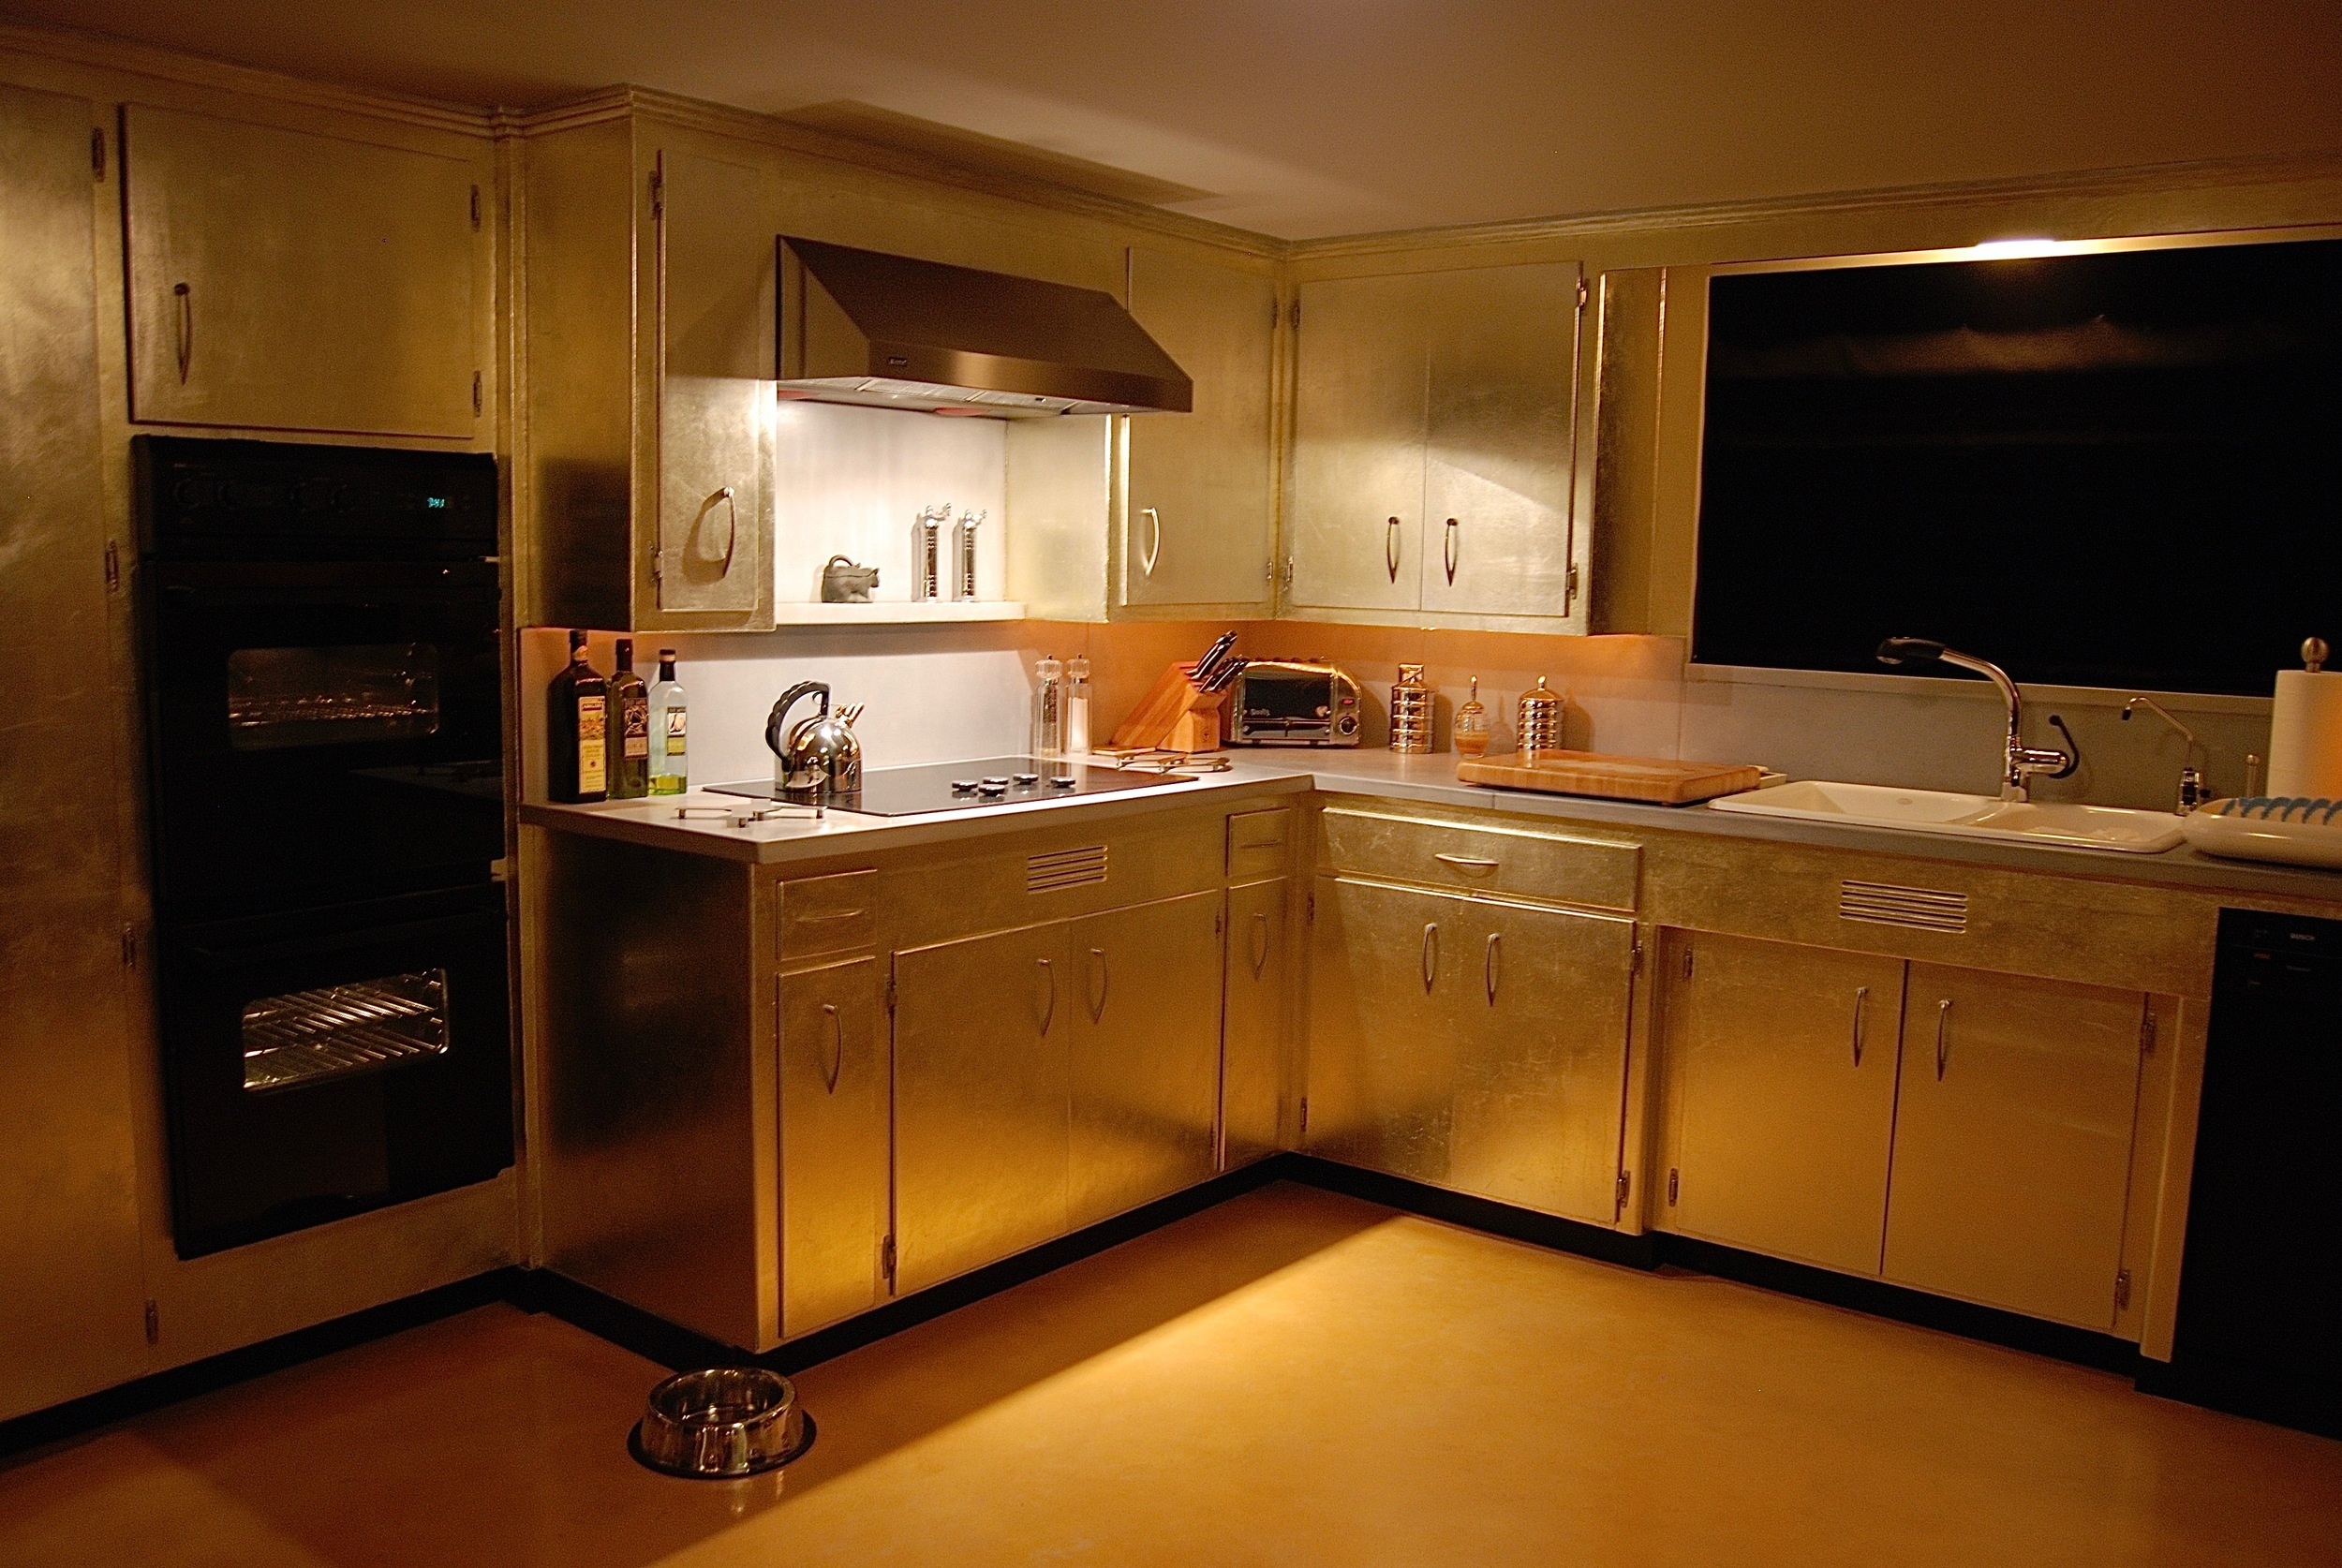 Trends of 50s Kitchen Furniture Resources @house2homegoods.net